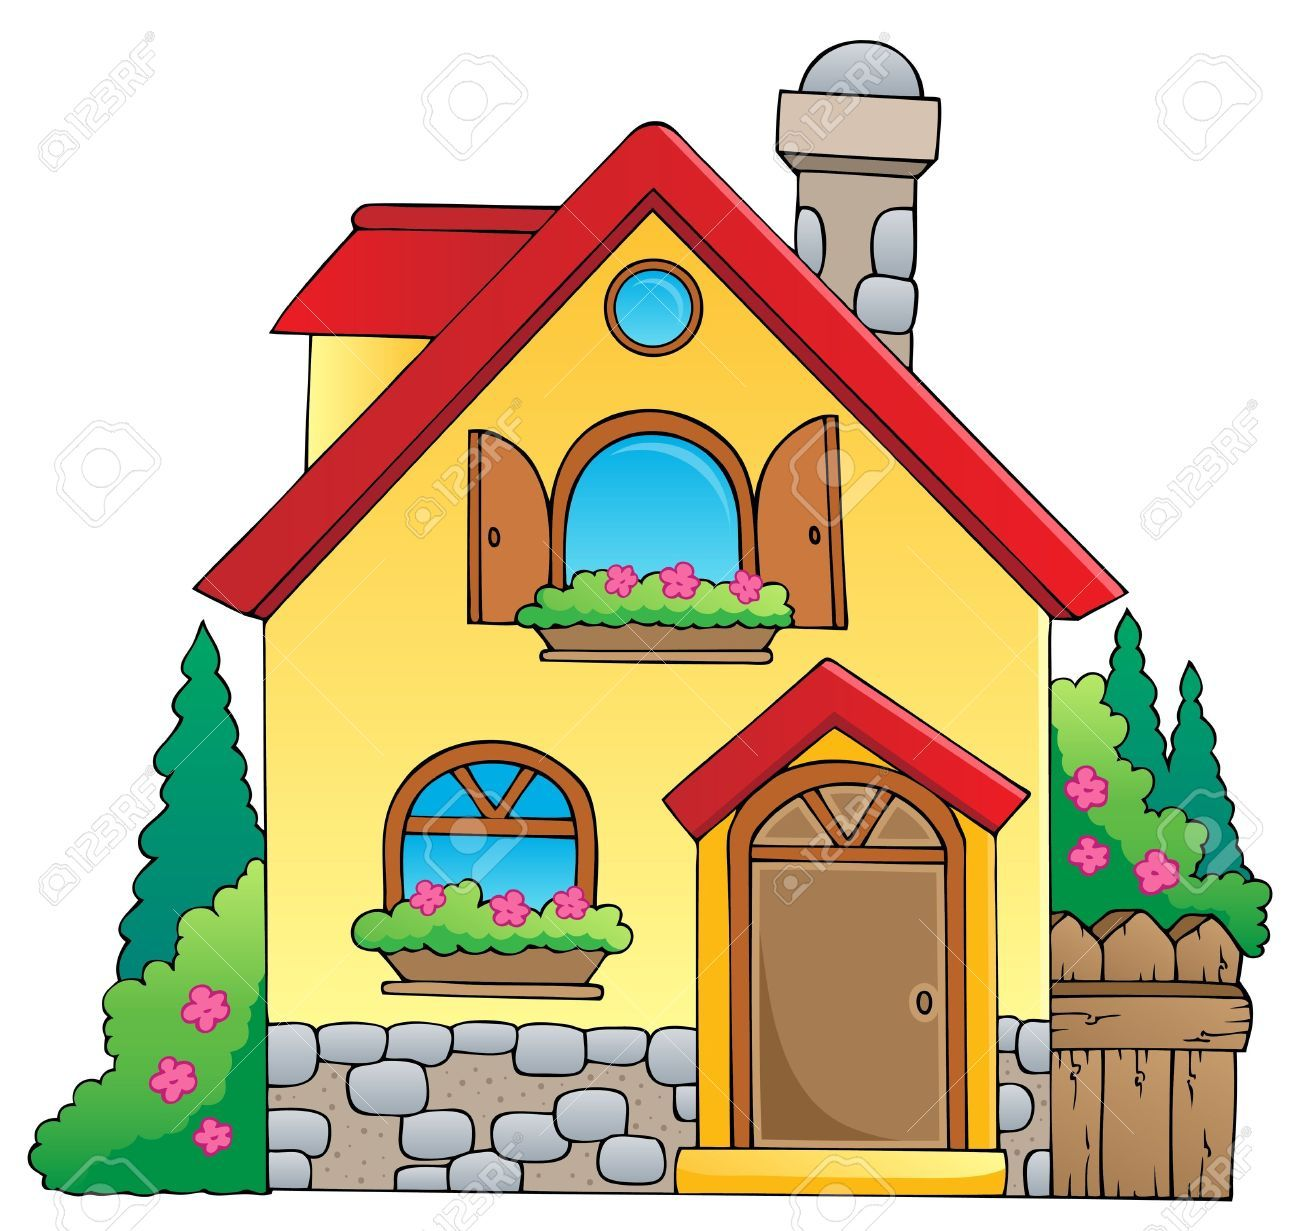 Haus clipart banner free stock Haus clipart » Clipart Portal banner free stock